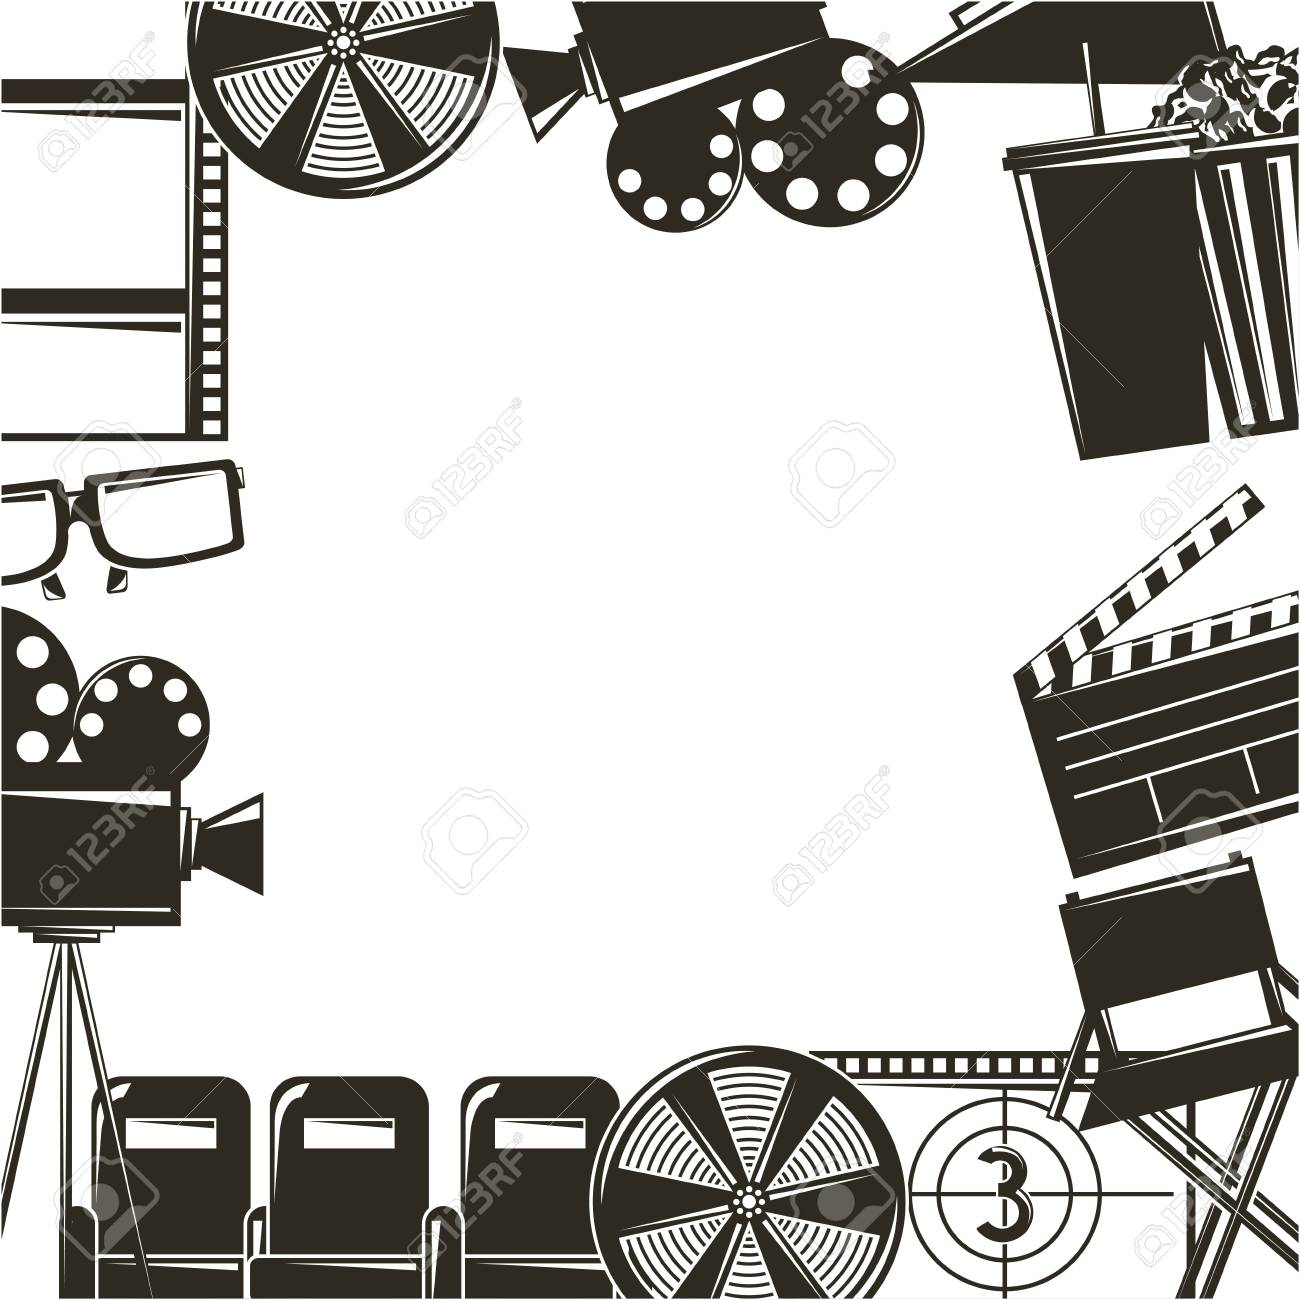 Border with cinema movie film equipment icons..